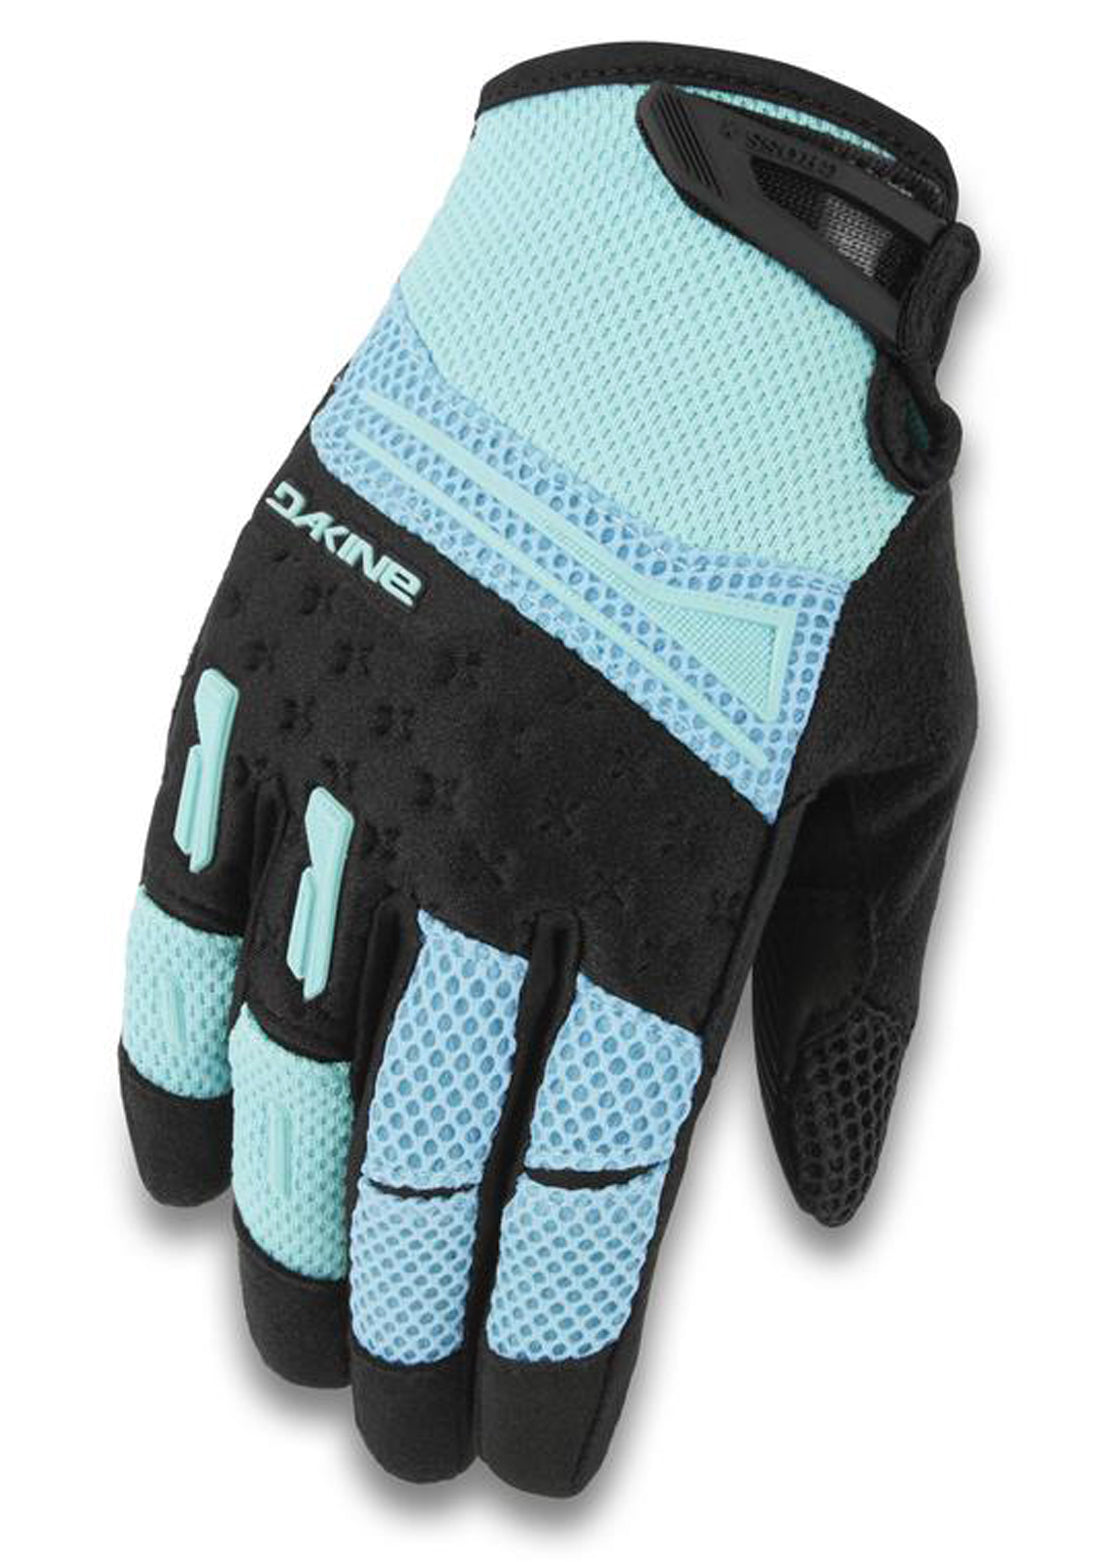 Dakine Women's Cross-X Mountain Bike Gloves Nile Blue